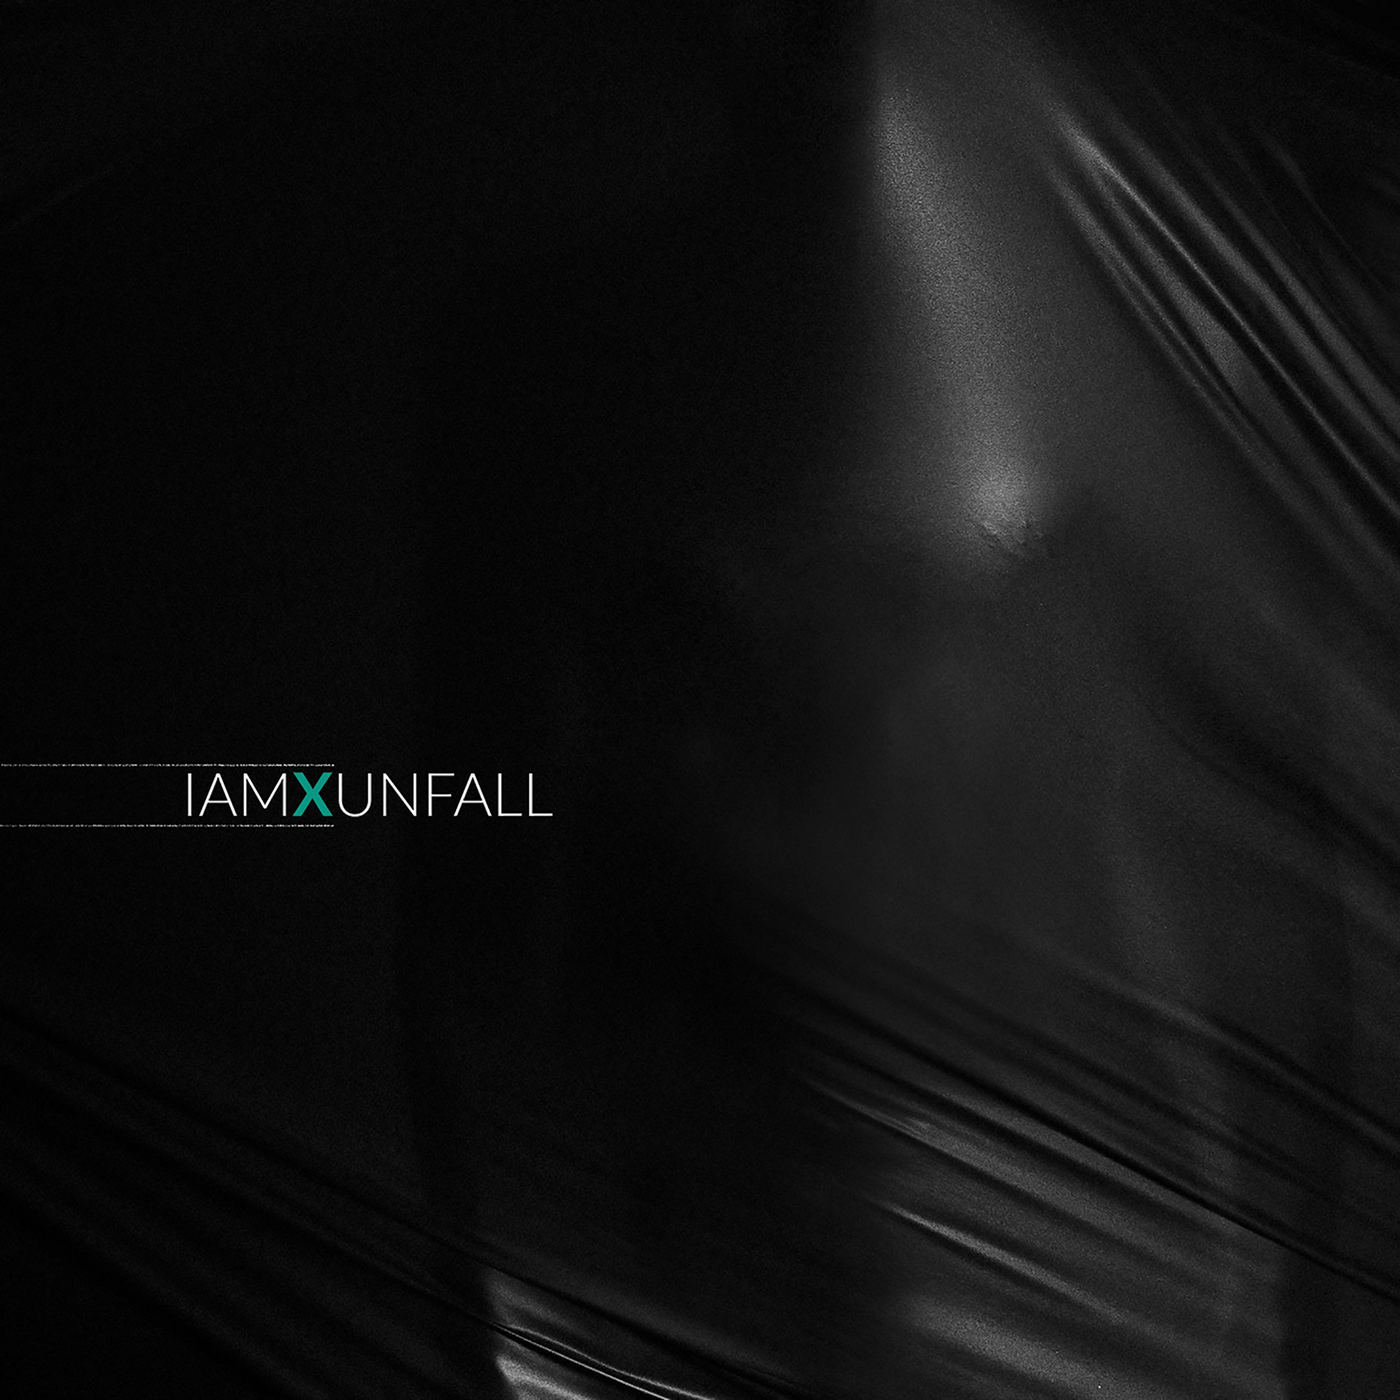 IAMX: Unfall (2017) Book Cover